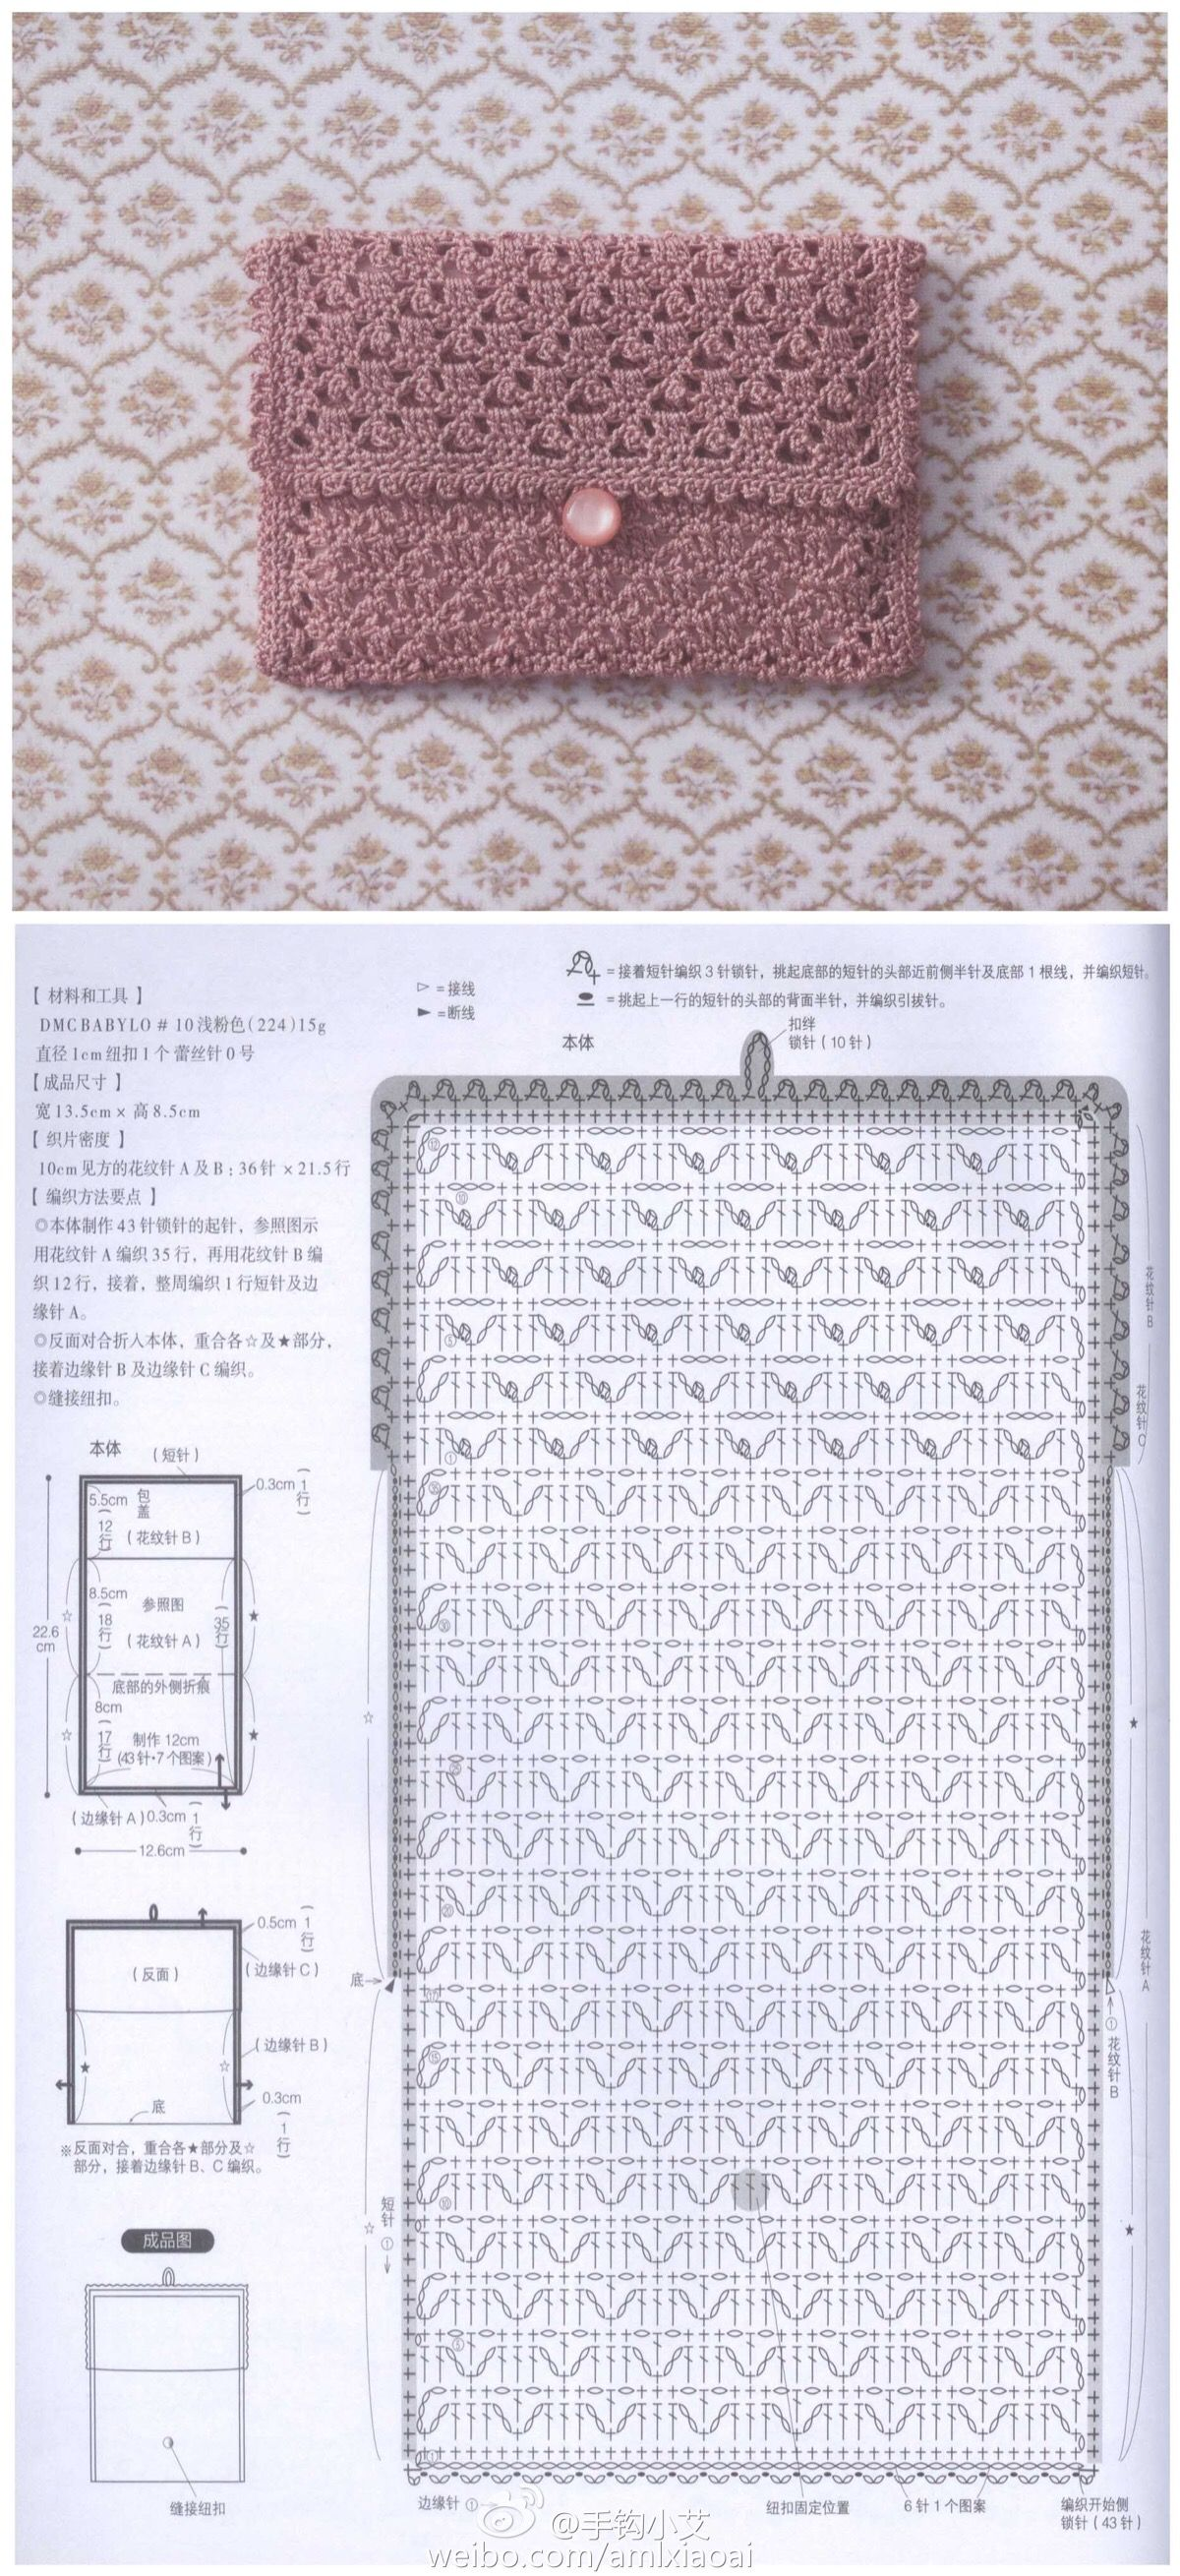 hight resolution of crochet purse pattern only diagram good enough